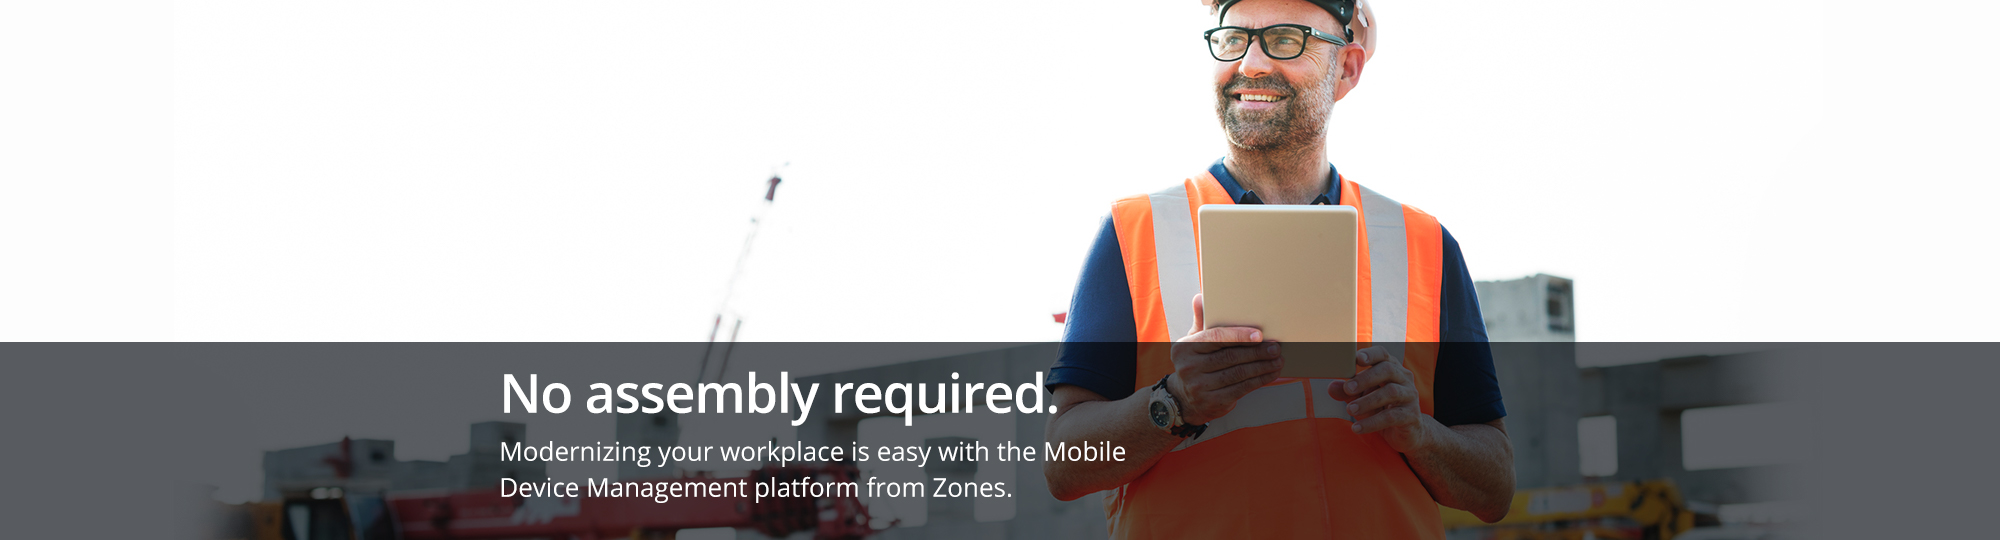 No assembly required. Modernizing your workplace is easy with the Mobile Device Management platform from Zones.